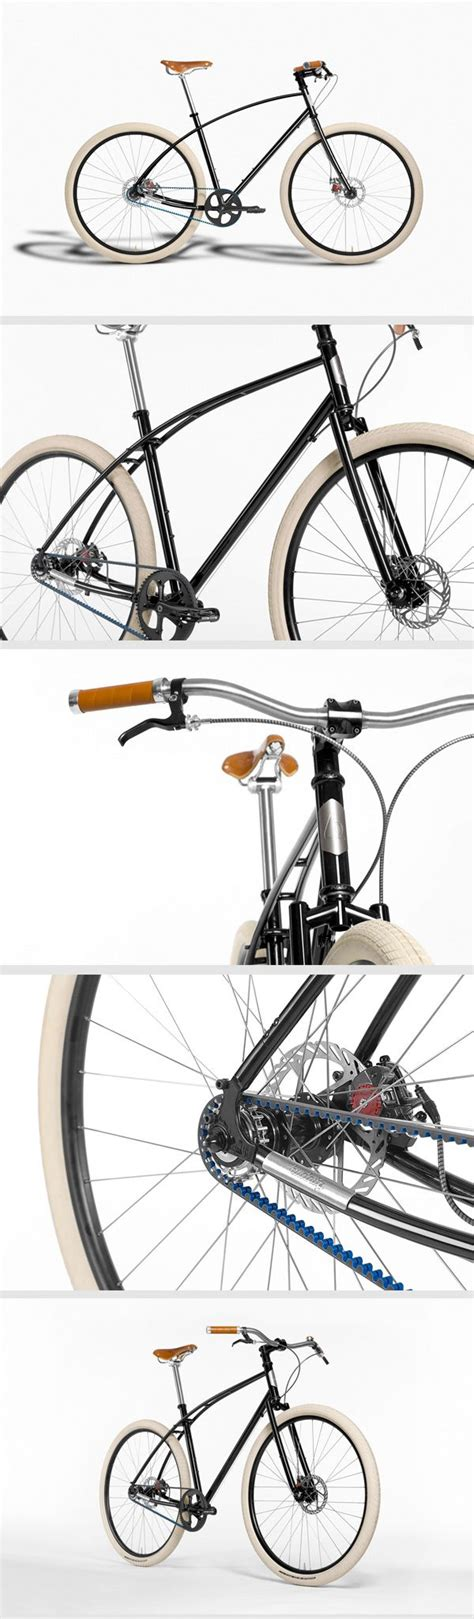 All About Bicycle 3 33 best images about cargo bike on honda cub